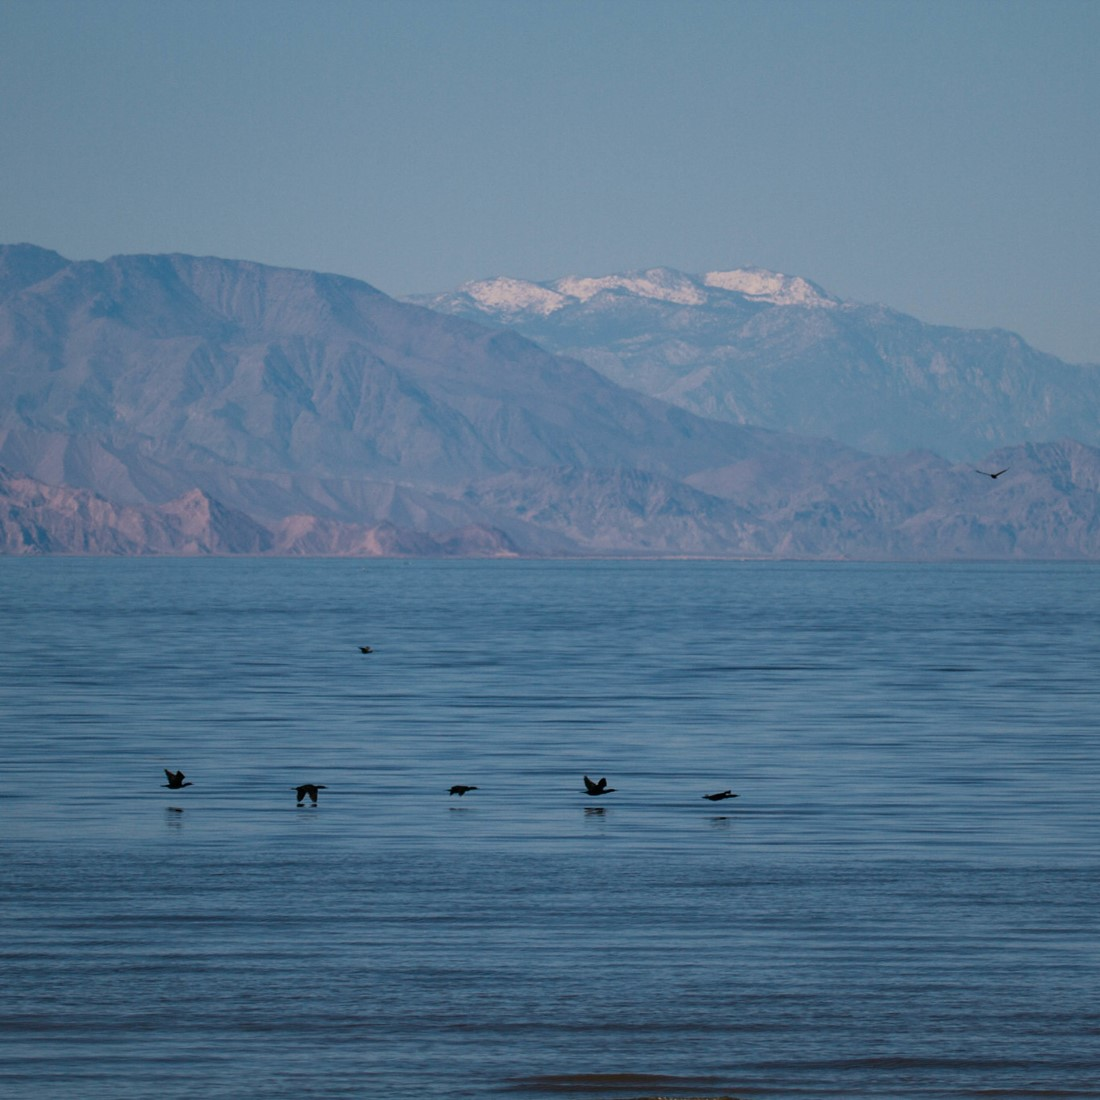 Double-crested Cormorants fly over a wide expanse of the Salton Sea, with mountains in the distance - some with snow on the peaks.